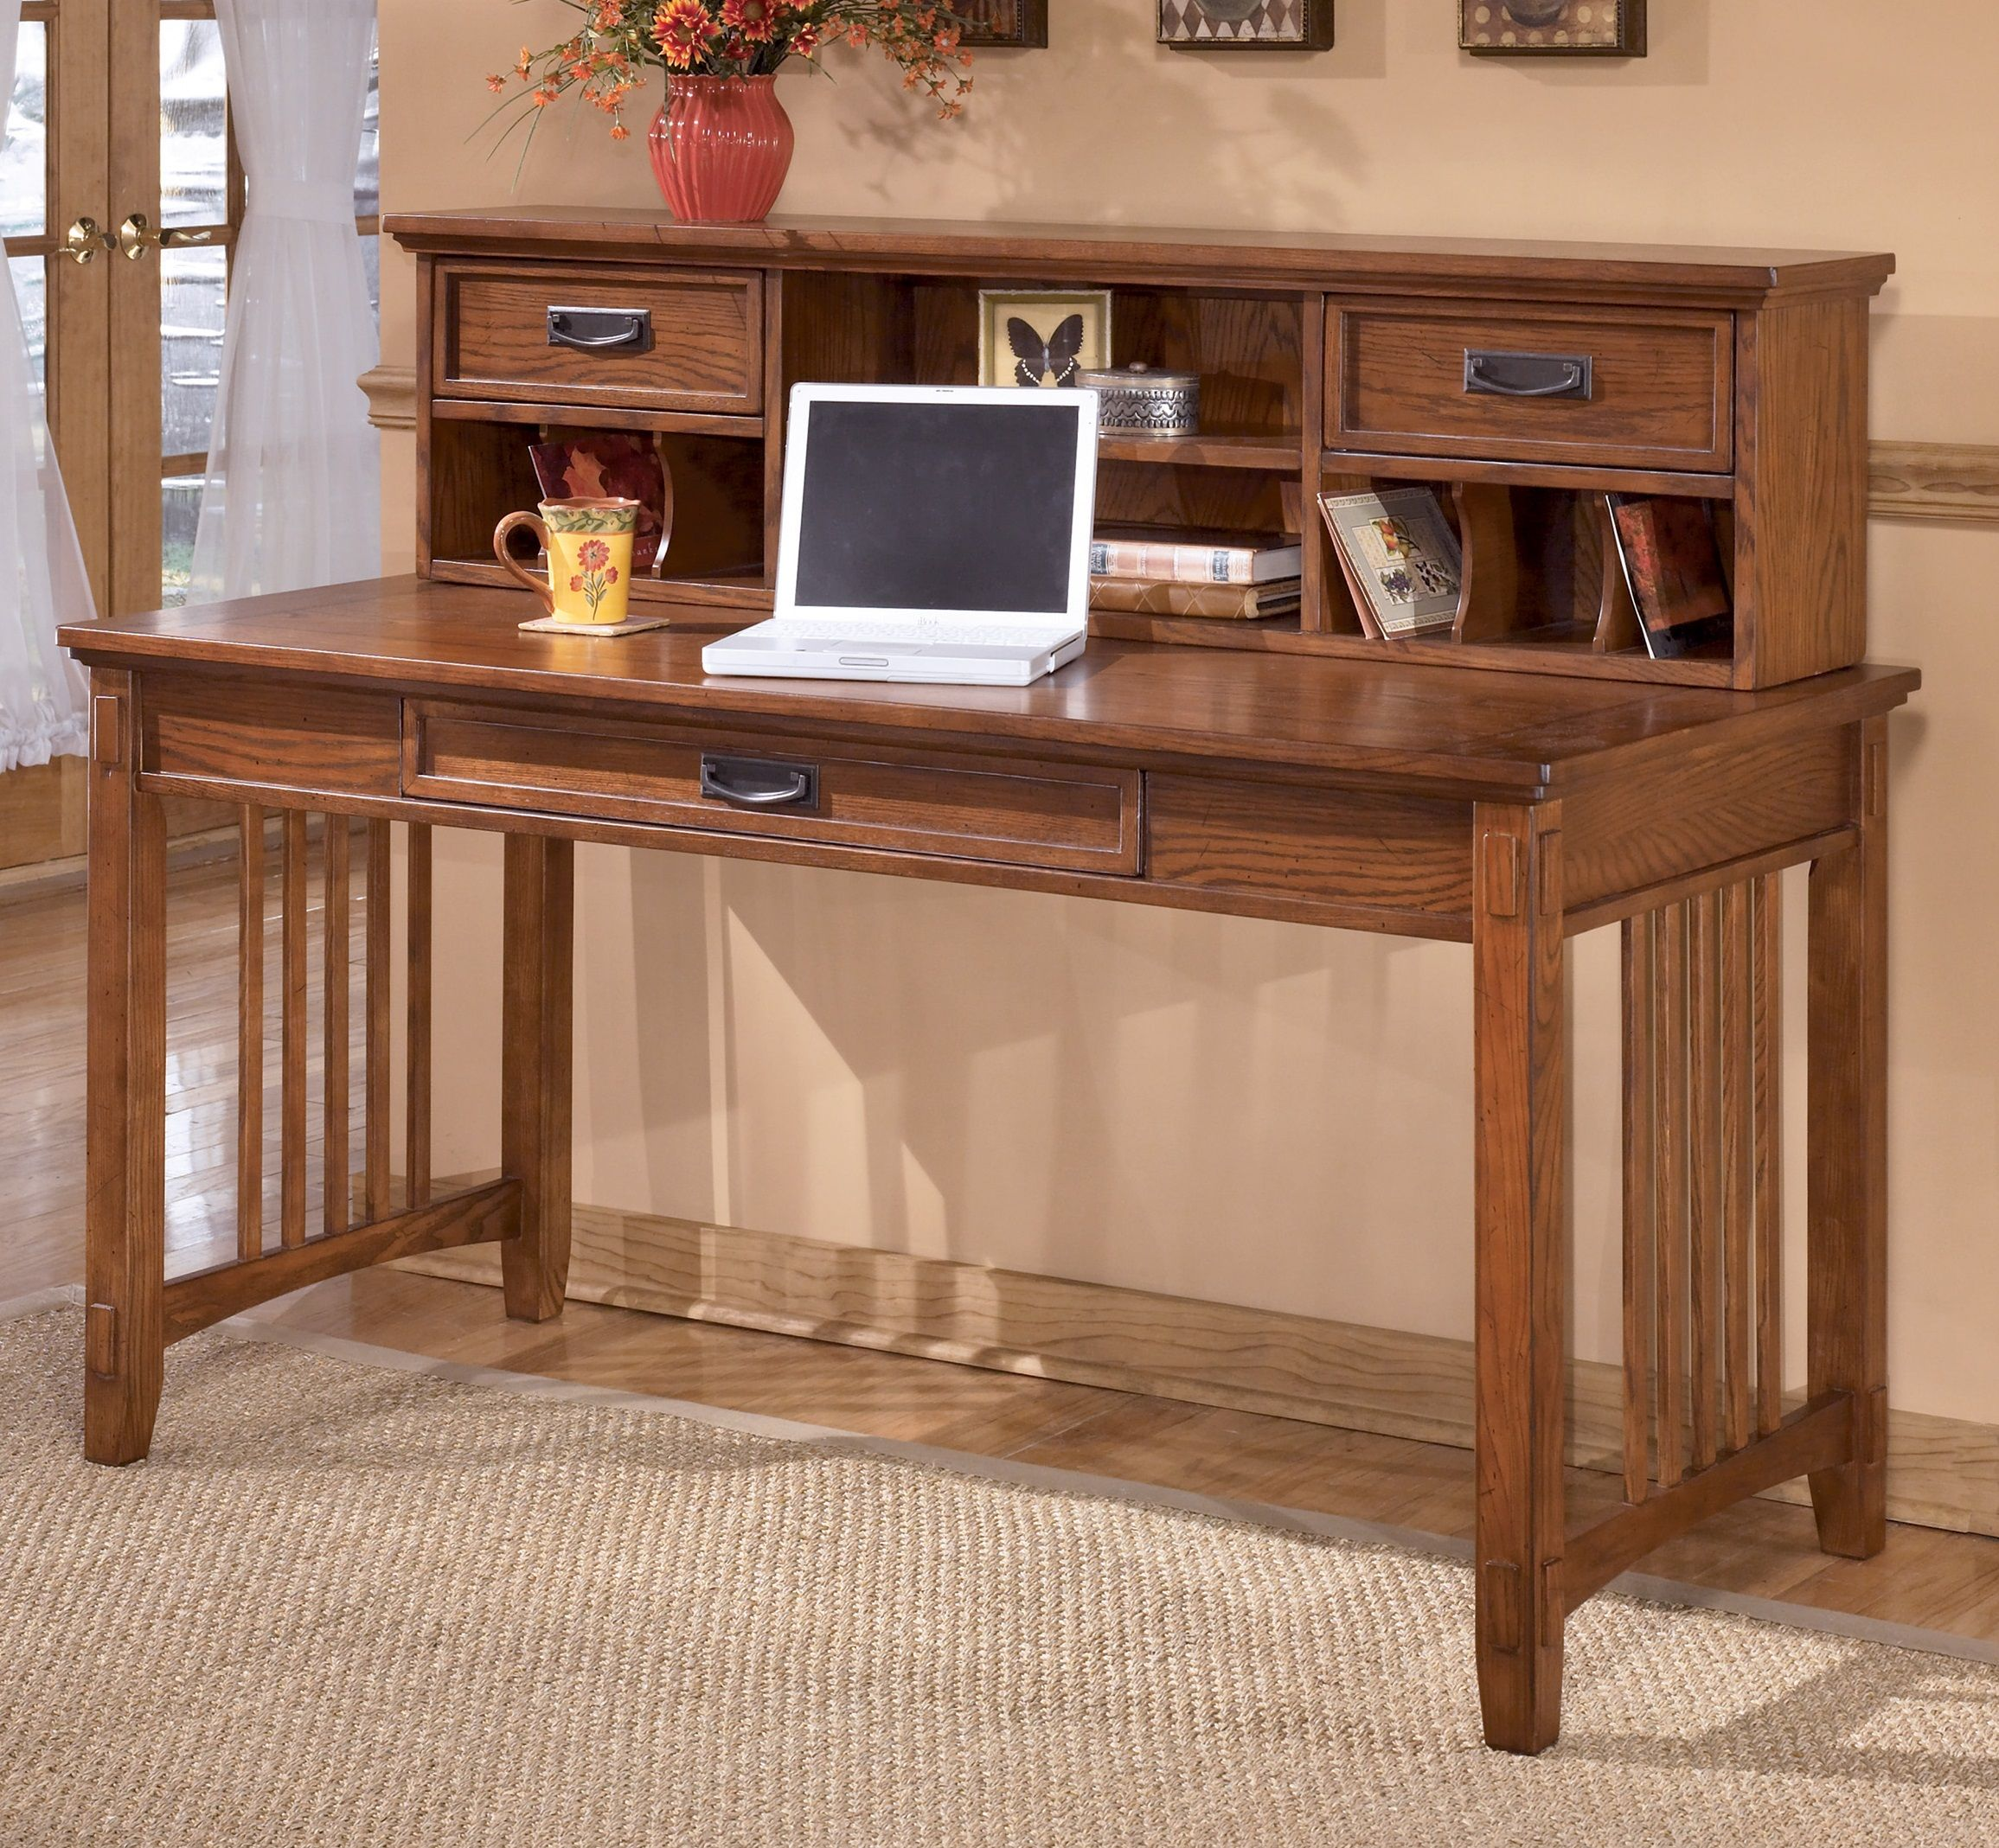 H319-48 Desks From Ashley At